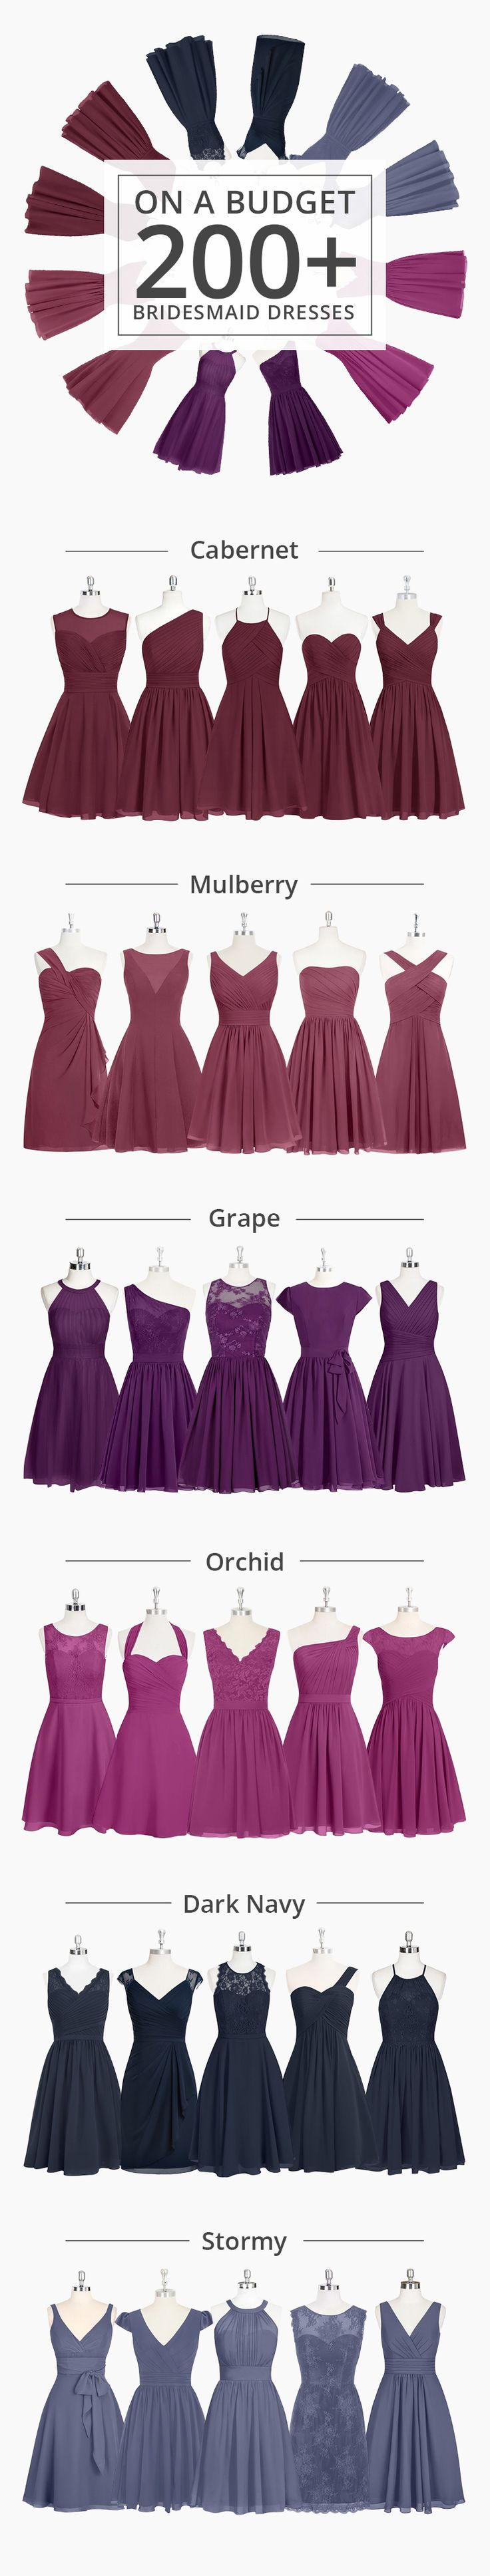 Check out our 200+ styles from long, elegant gowns, to fun and flirty dresses. Azazie focuses on making high-quality dresses with affordable prices. We believe that every woman should be able to wear something that they love and feel comfortable in.